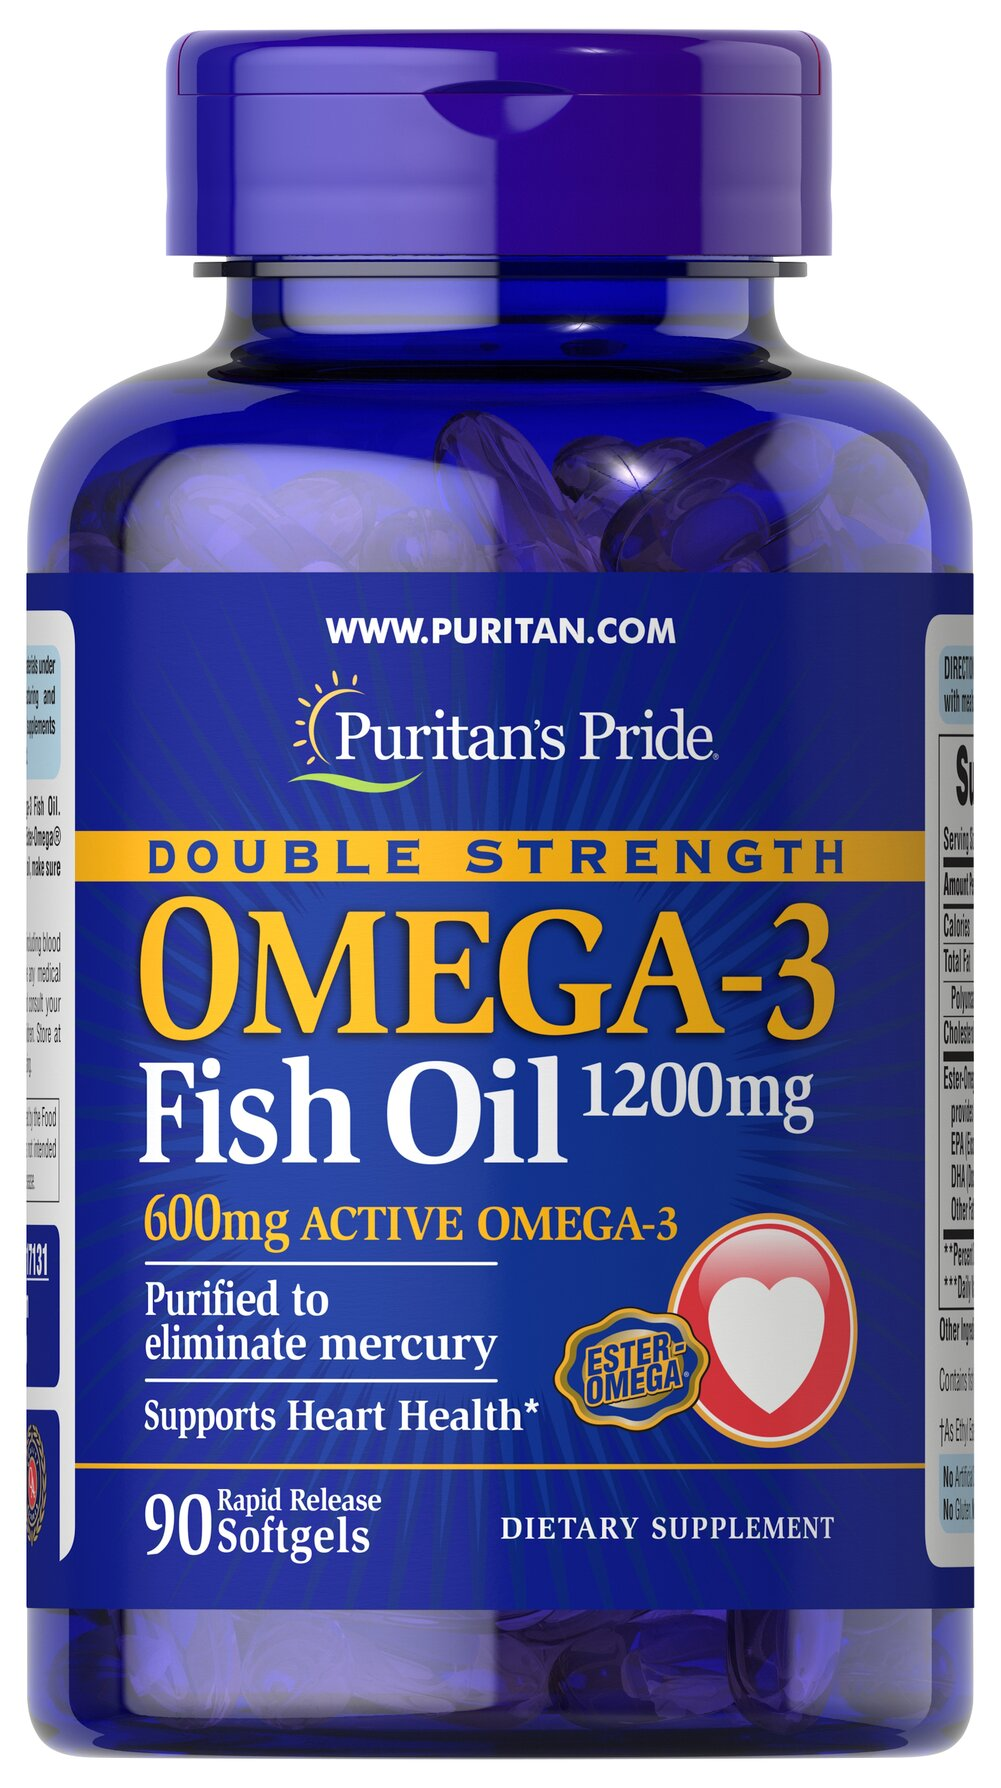 Double Strength Omega-3 Fish Oil 1200 mg/600 mg Omega-3 <p><span></span>Provides 600 mg of Active Omega-3.</p><p><span></span>Omega-3 fatty acids are important for heart health.**</p><p><span></span>Purified to eliminate mercury.</p><p>Each double strength Omega-3 fish oil softgel contains 1200mg of Ester-Omega® Fish Oil. This provides 600 mg of Total Omega-3 Fatty Acids comprising of DHA, EPA and other fatty acid